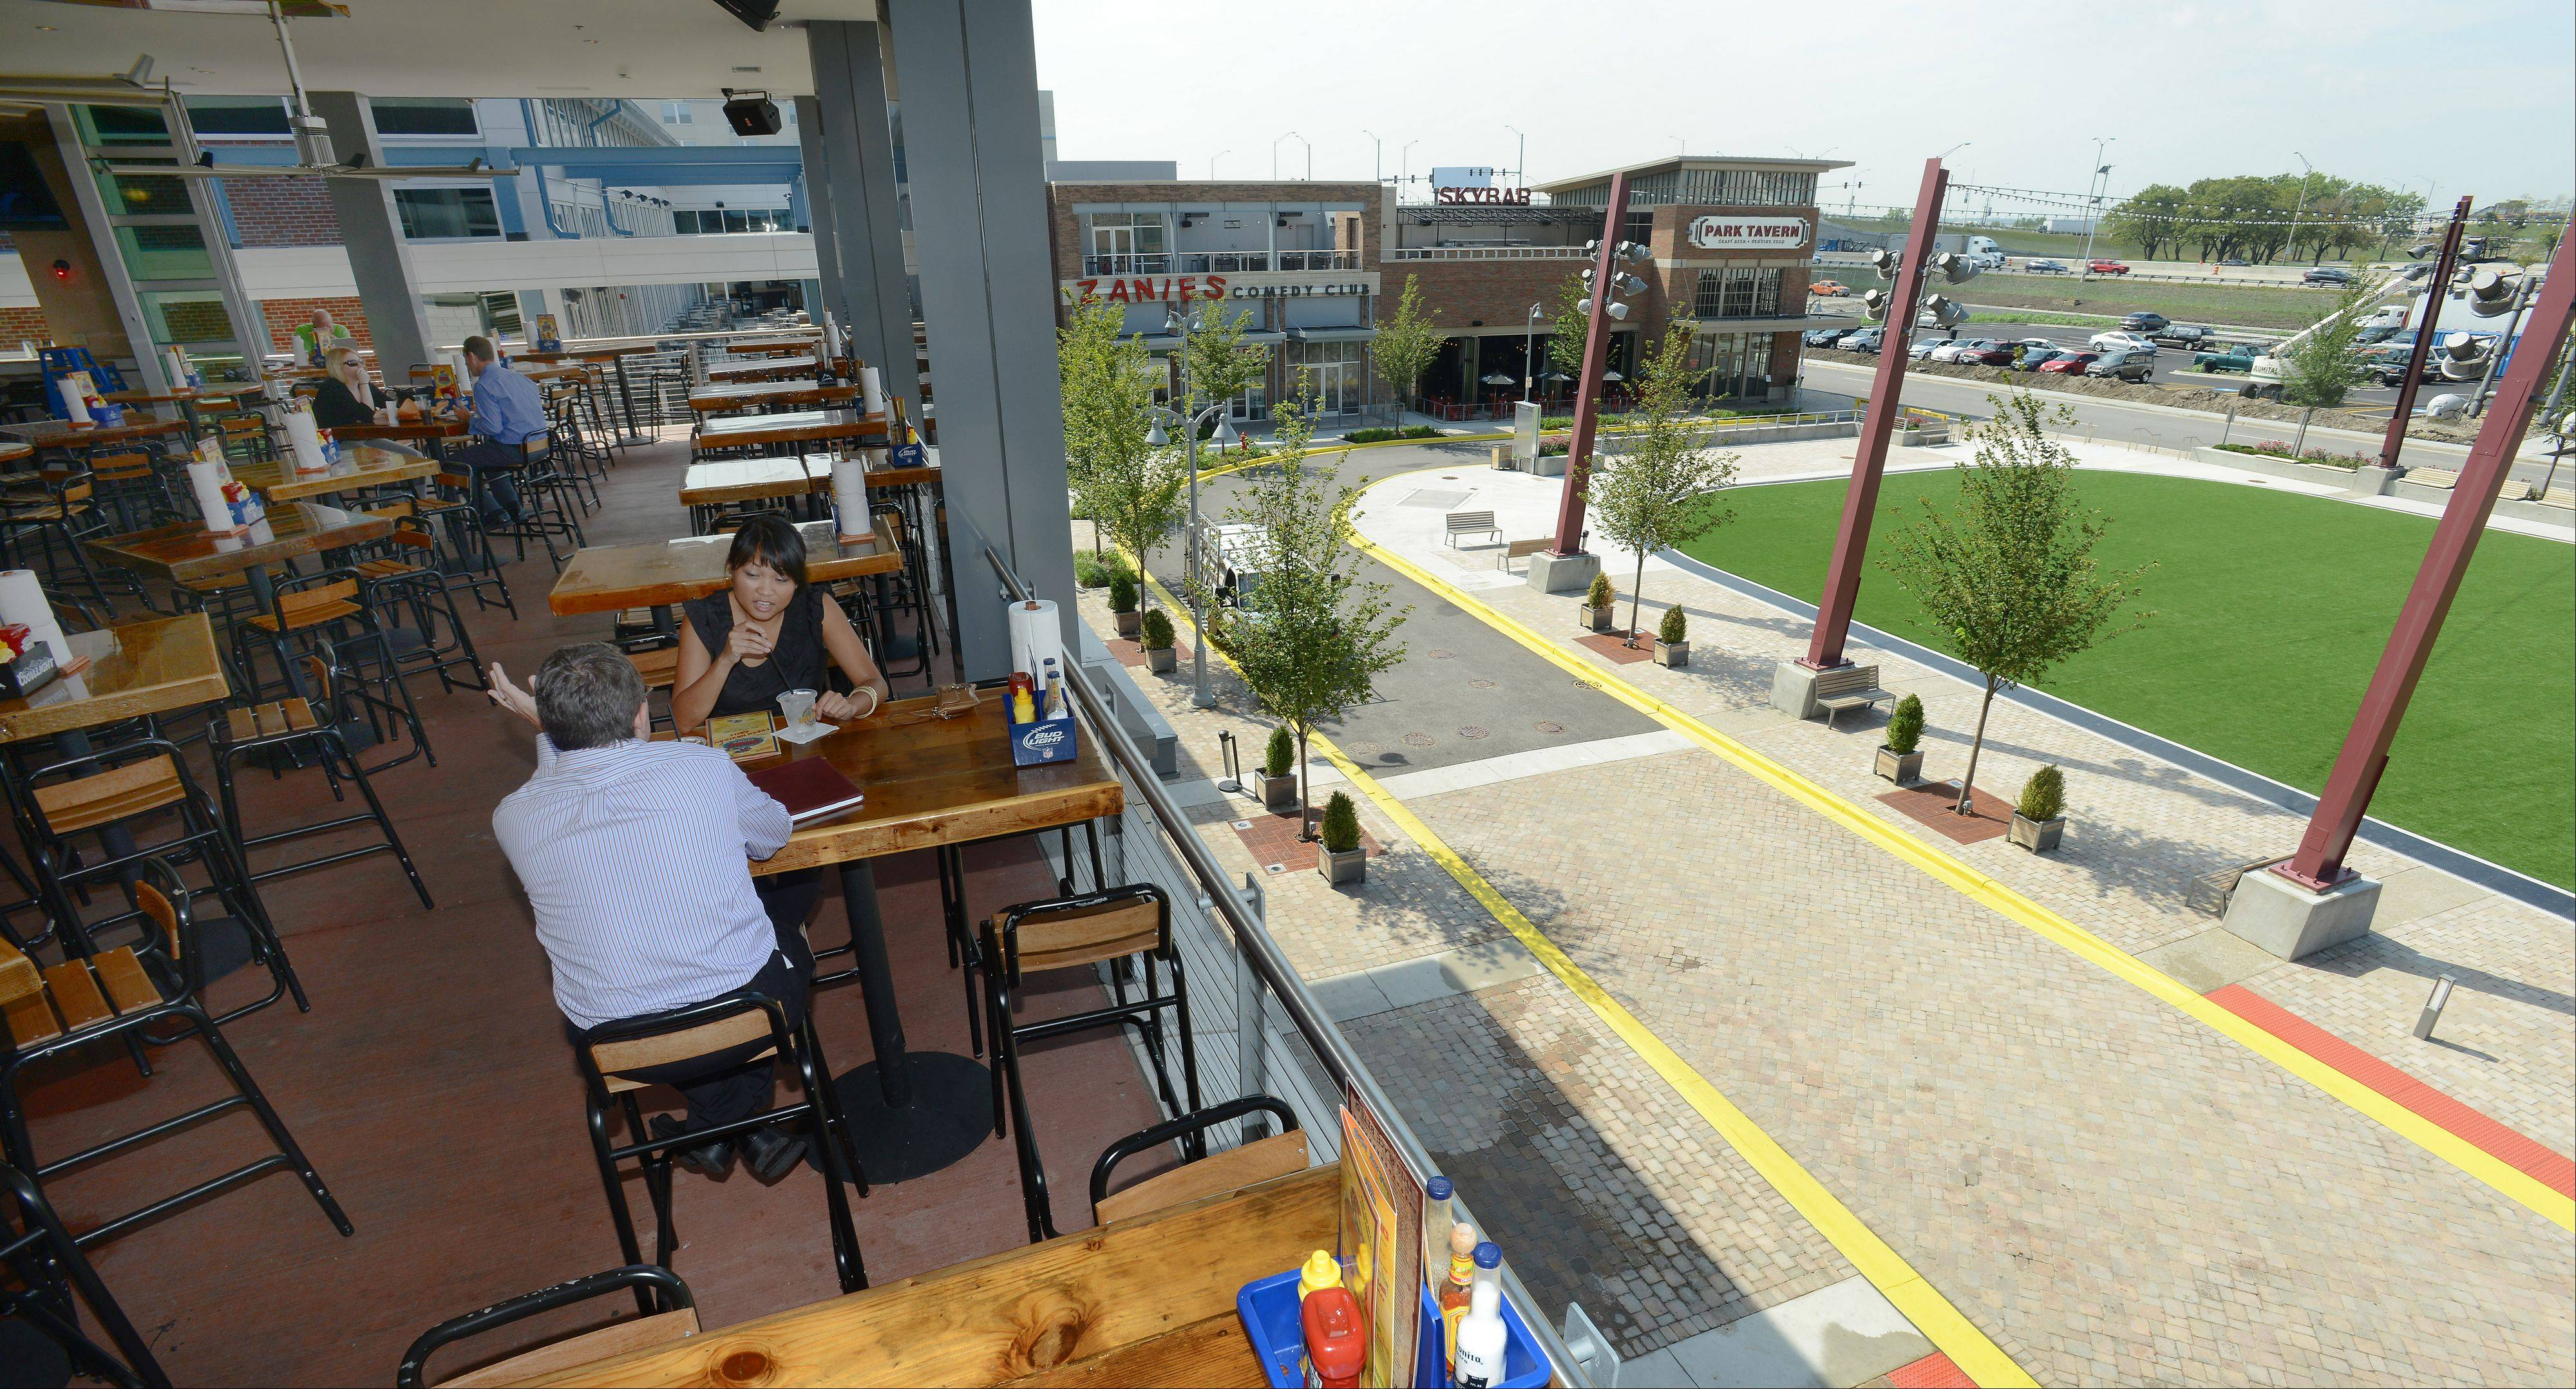 Adobe Gila's open dining room offers a view of the park in Rosemont's new entertainment district.